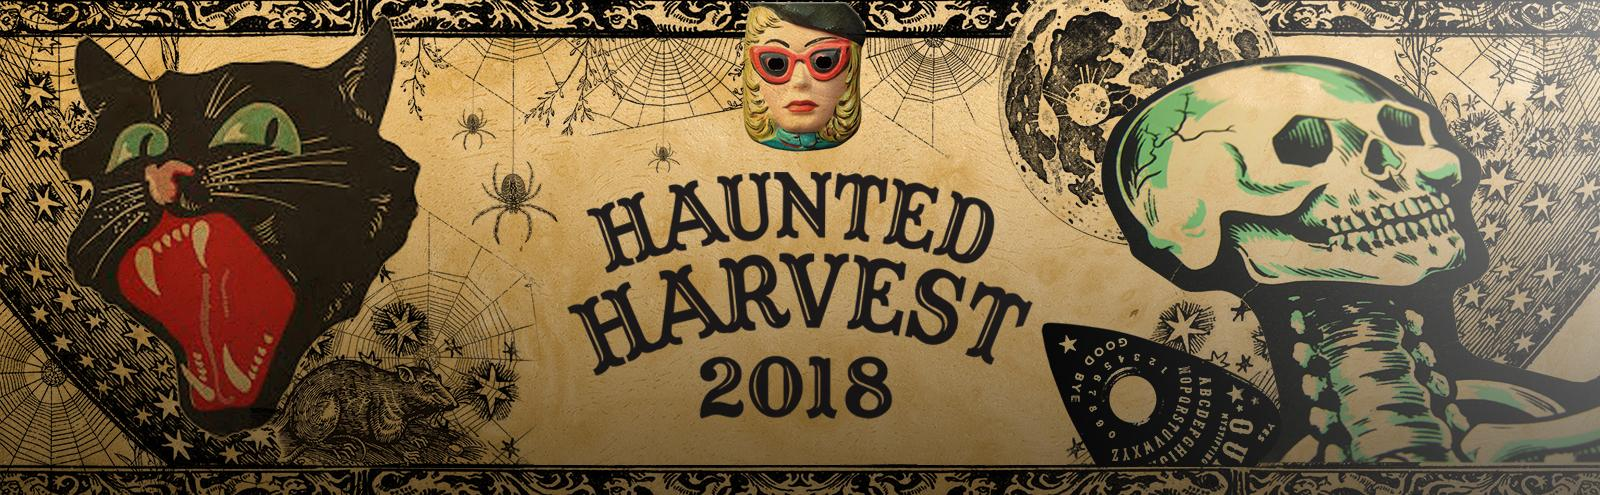 cats and skeleton graphics on Haunted Harvest poster